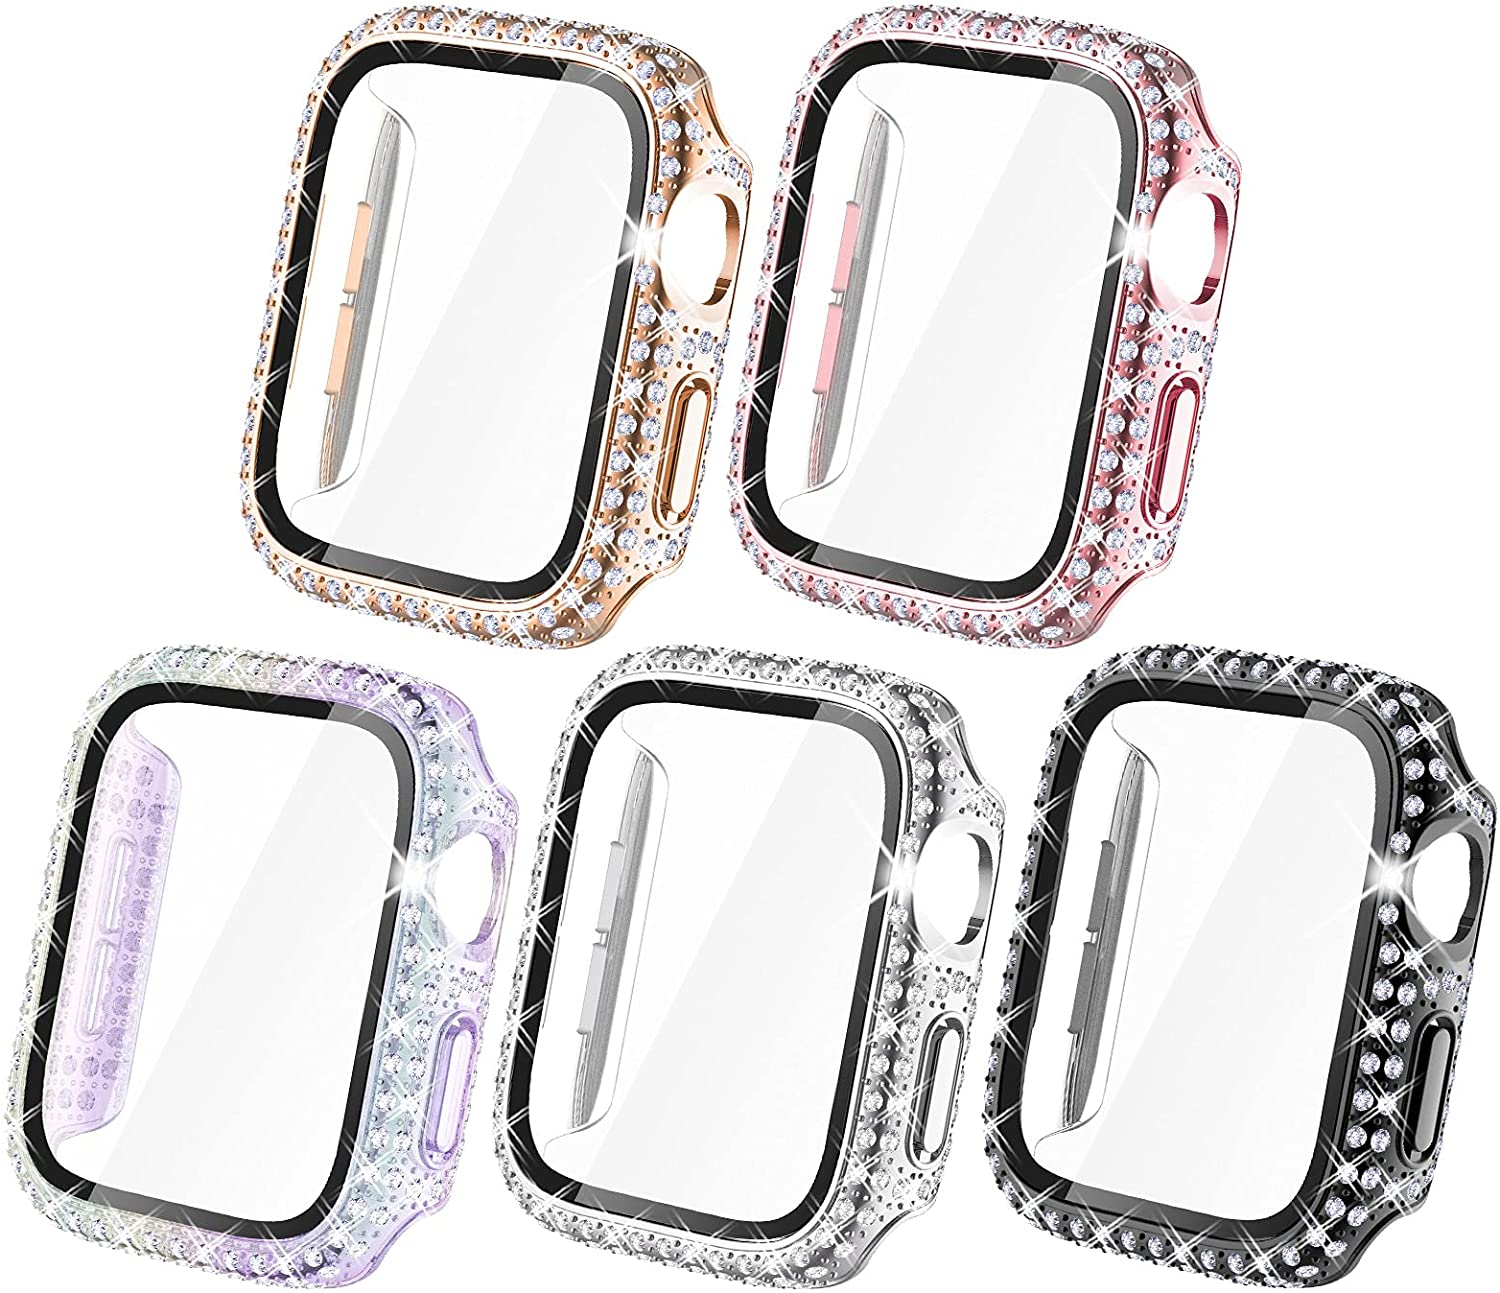 NewWays Bling Cases with Screen Protector Compatible for Apple Watch 38mm 40mm 42mm 44mm, Protective Cover for iWatch SE Series 6 5 4 3 2 1 (40mm, Black/Pink/Rose Gold/Silver/Iridescent)